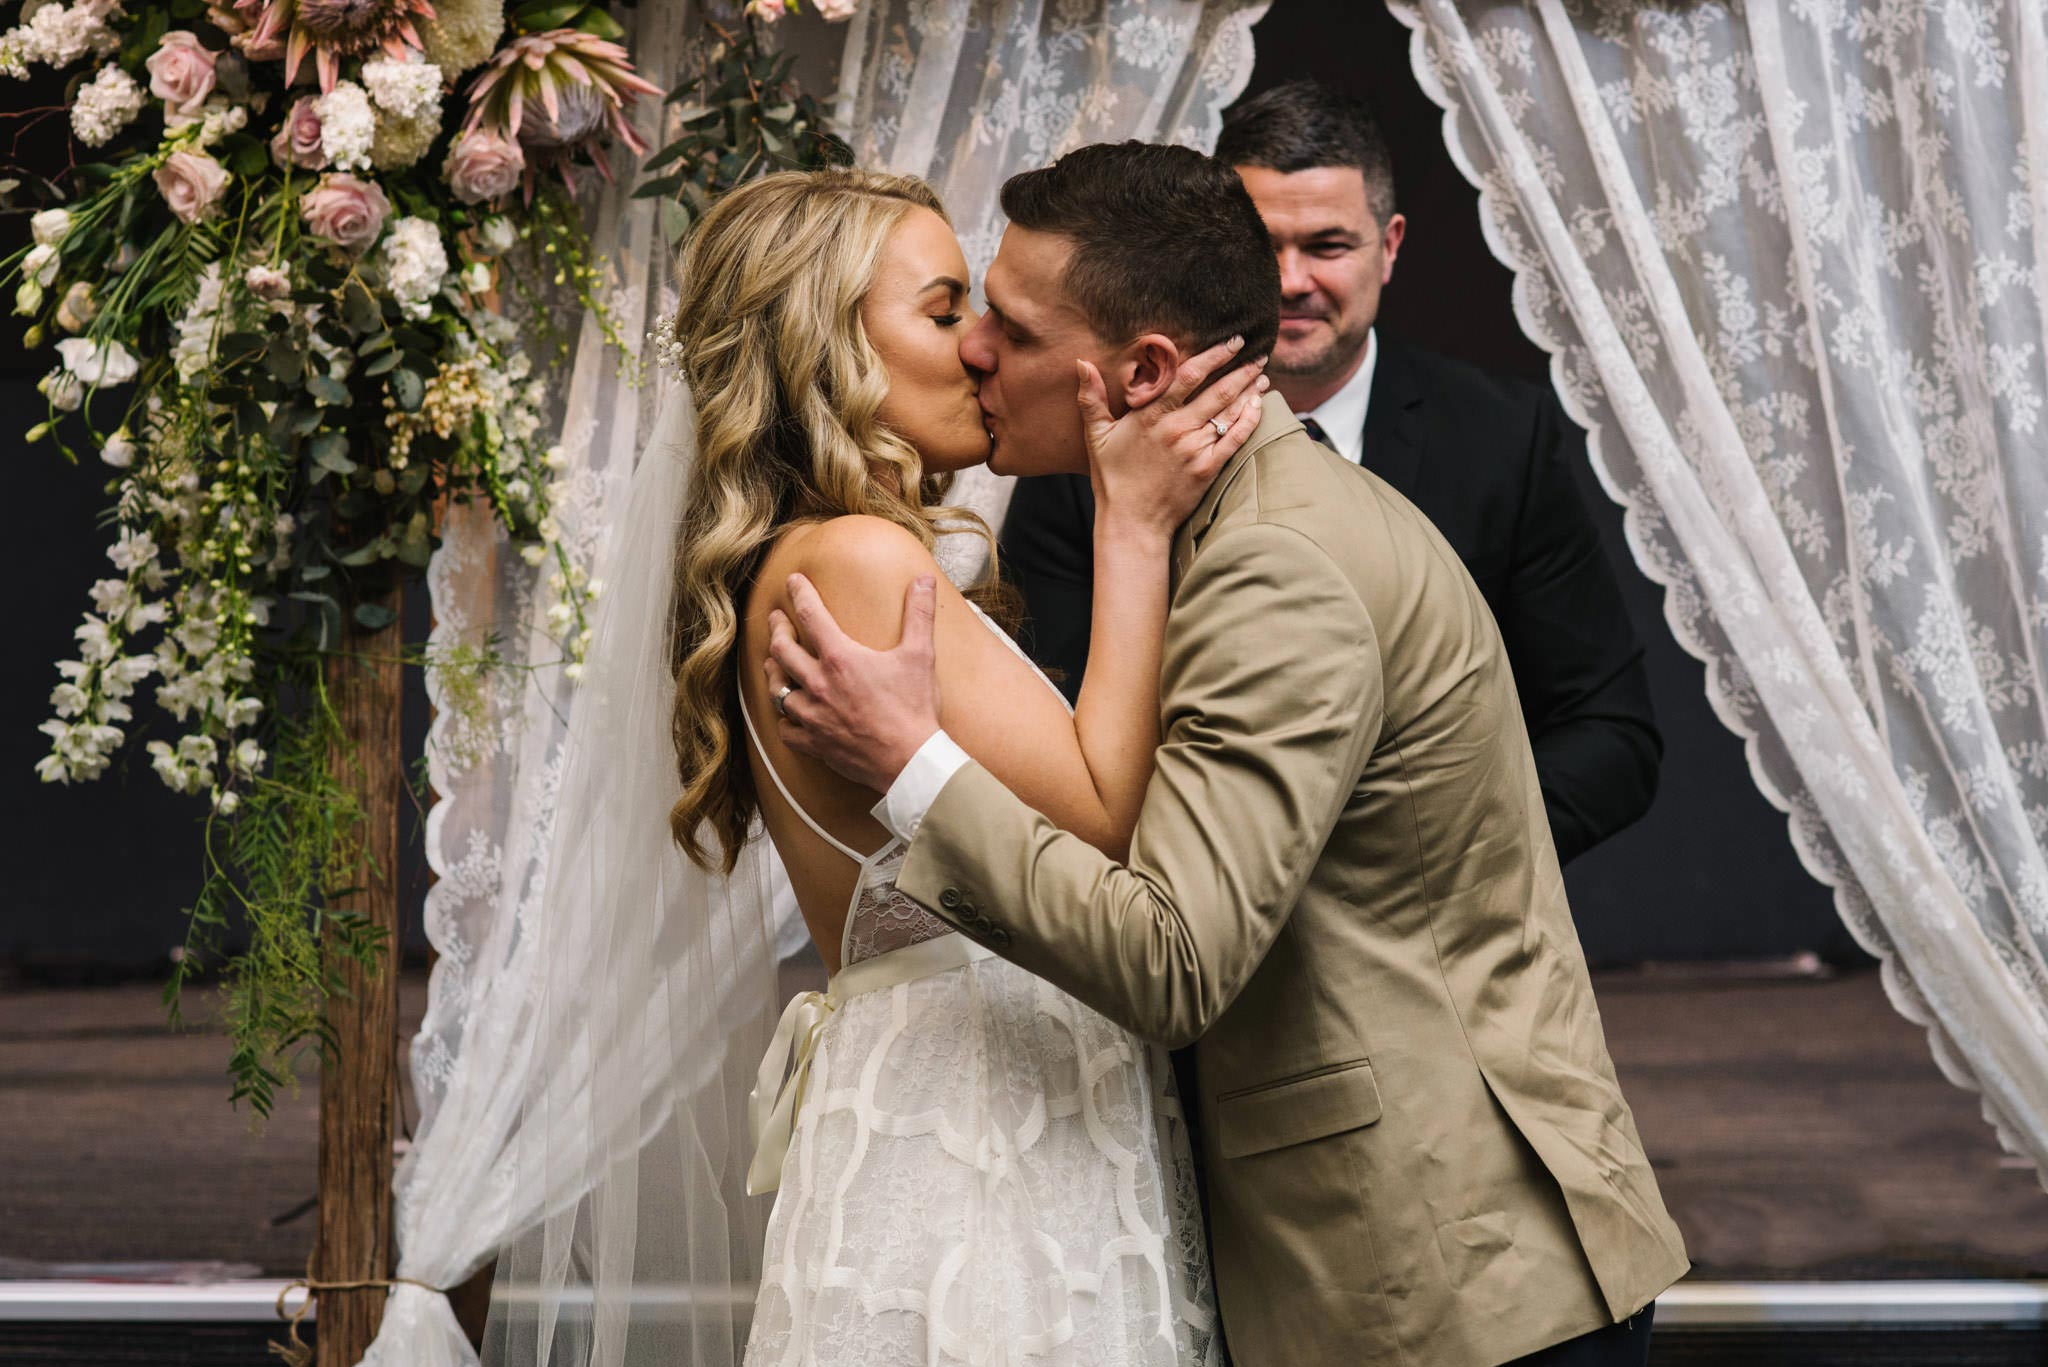 First kiss in front of lace altar